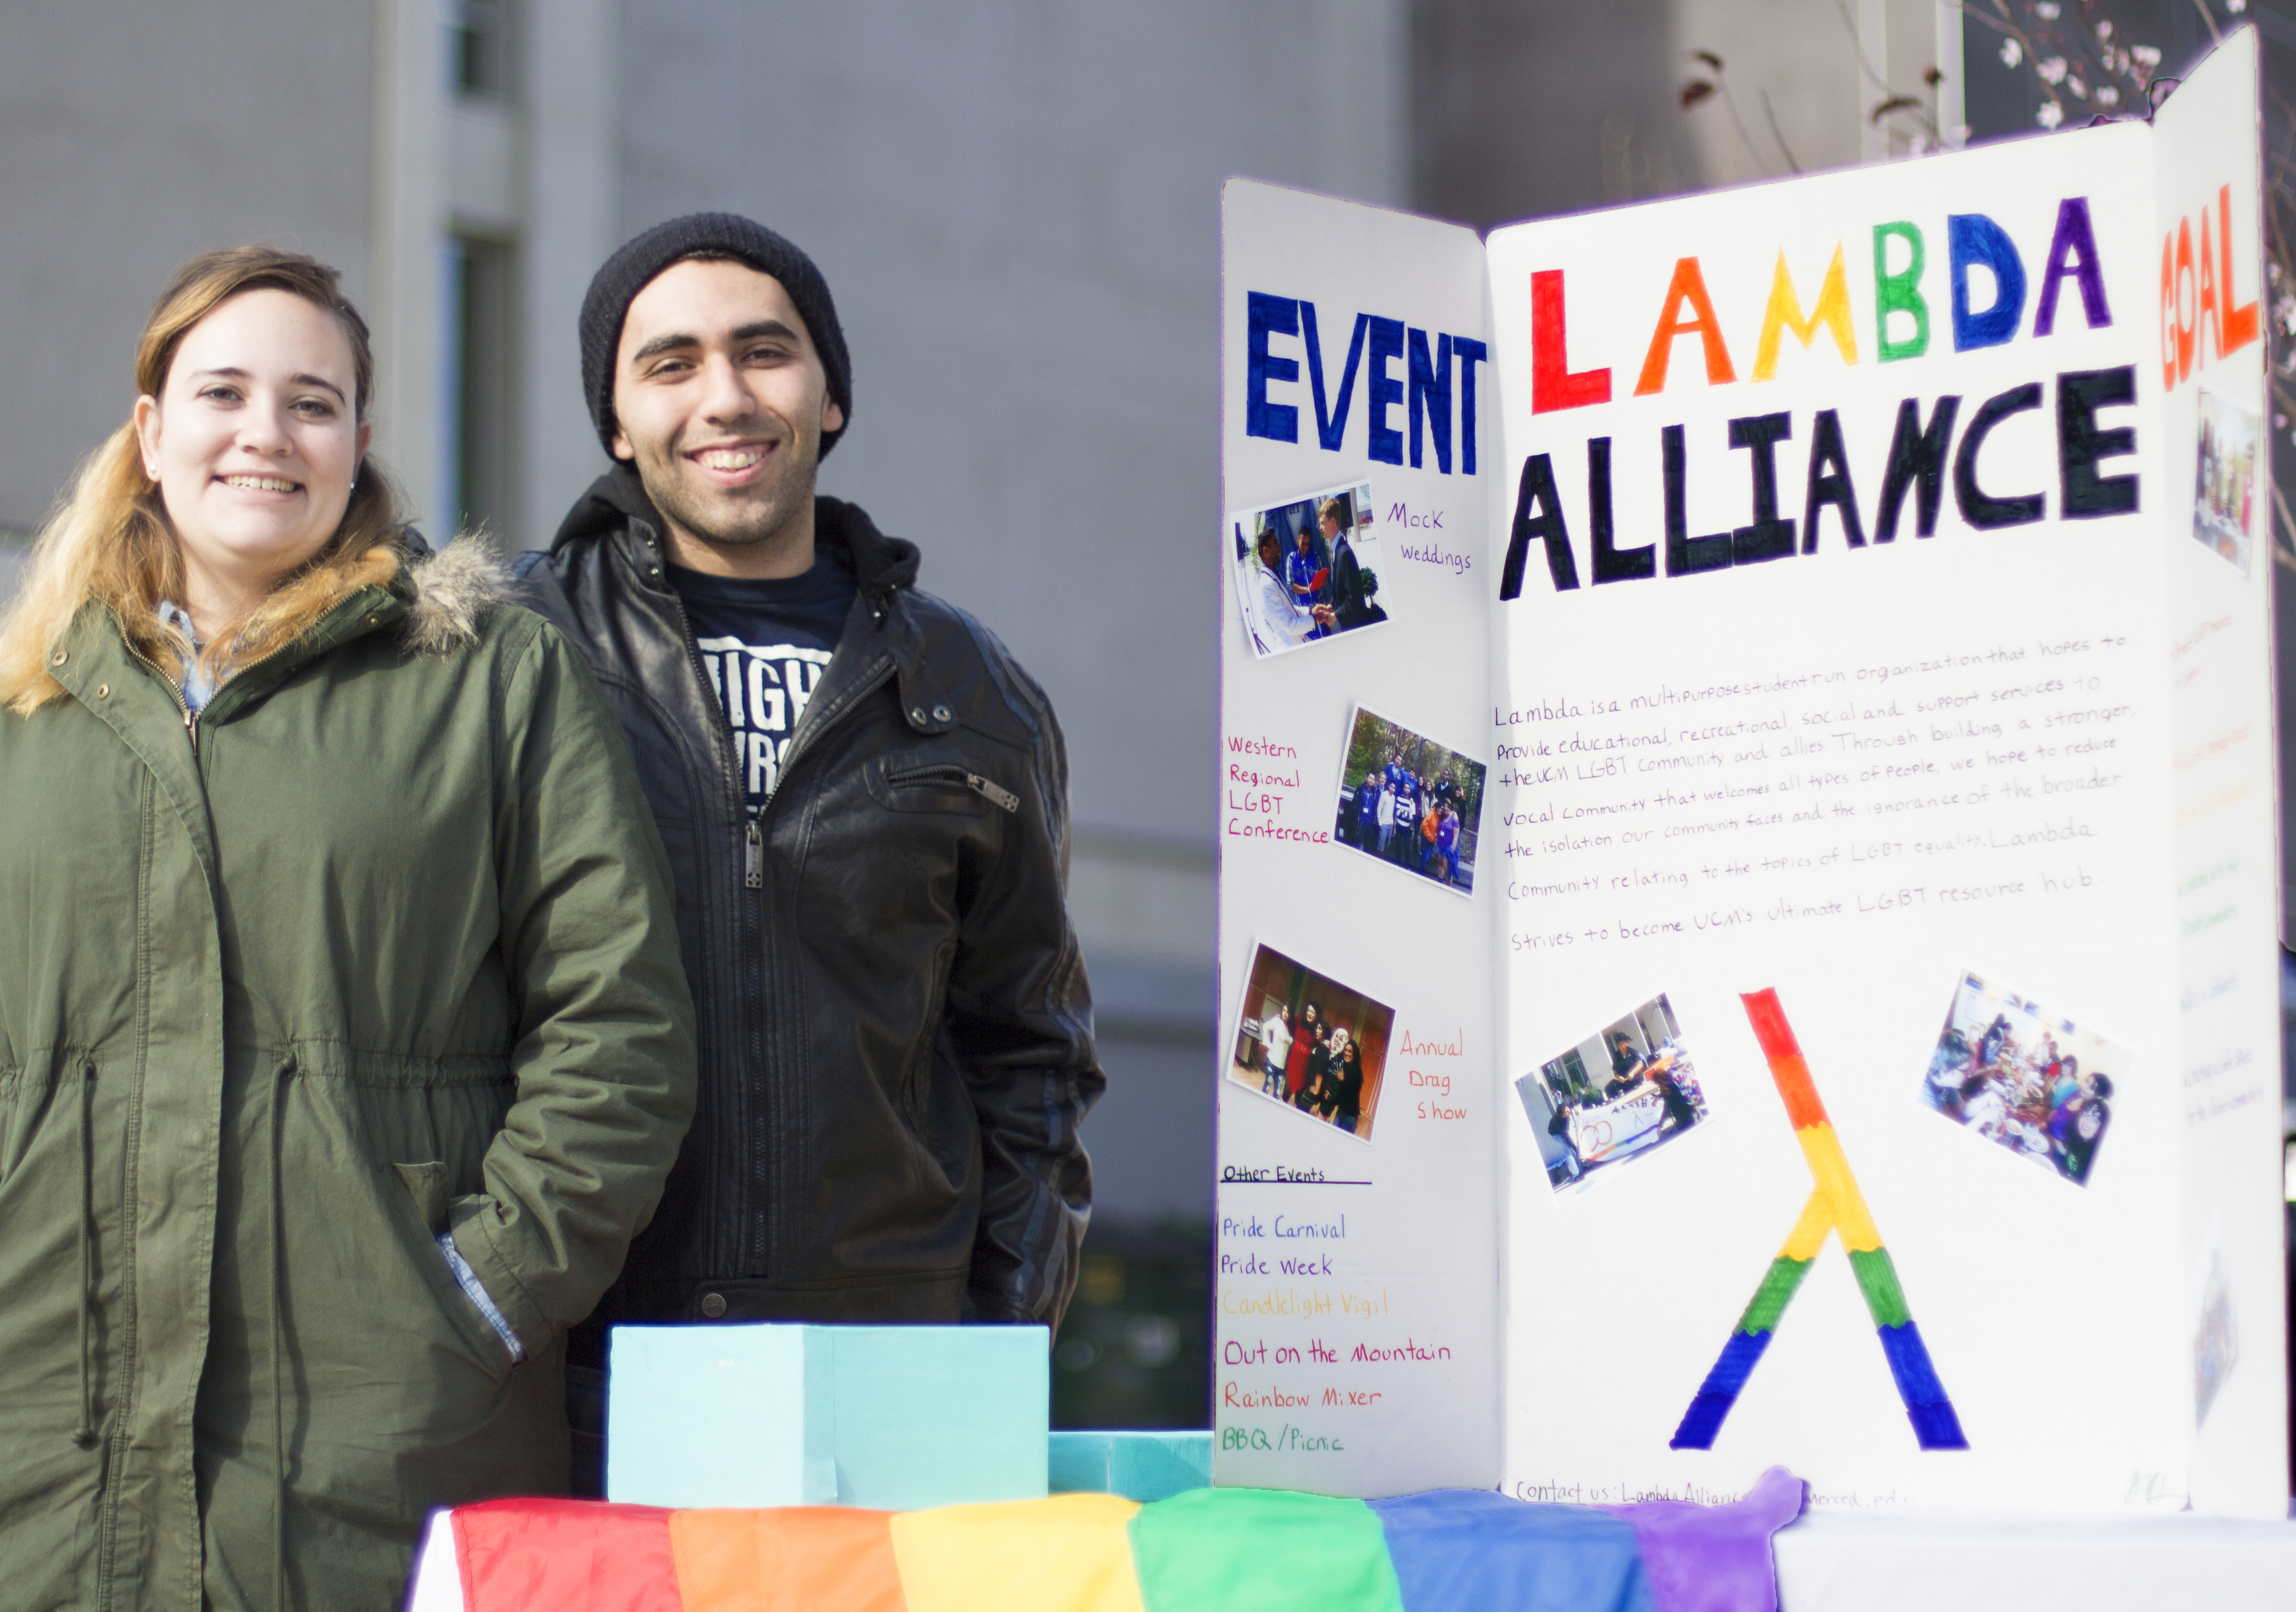 Lambda Alliance focuses on LGBT culture and heritage.